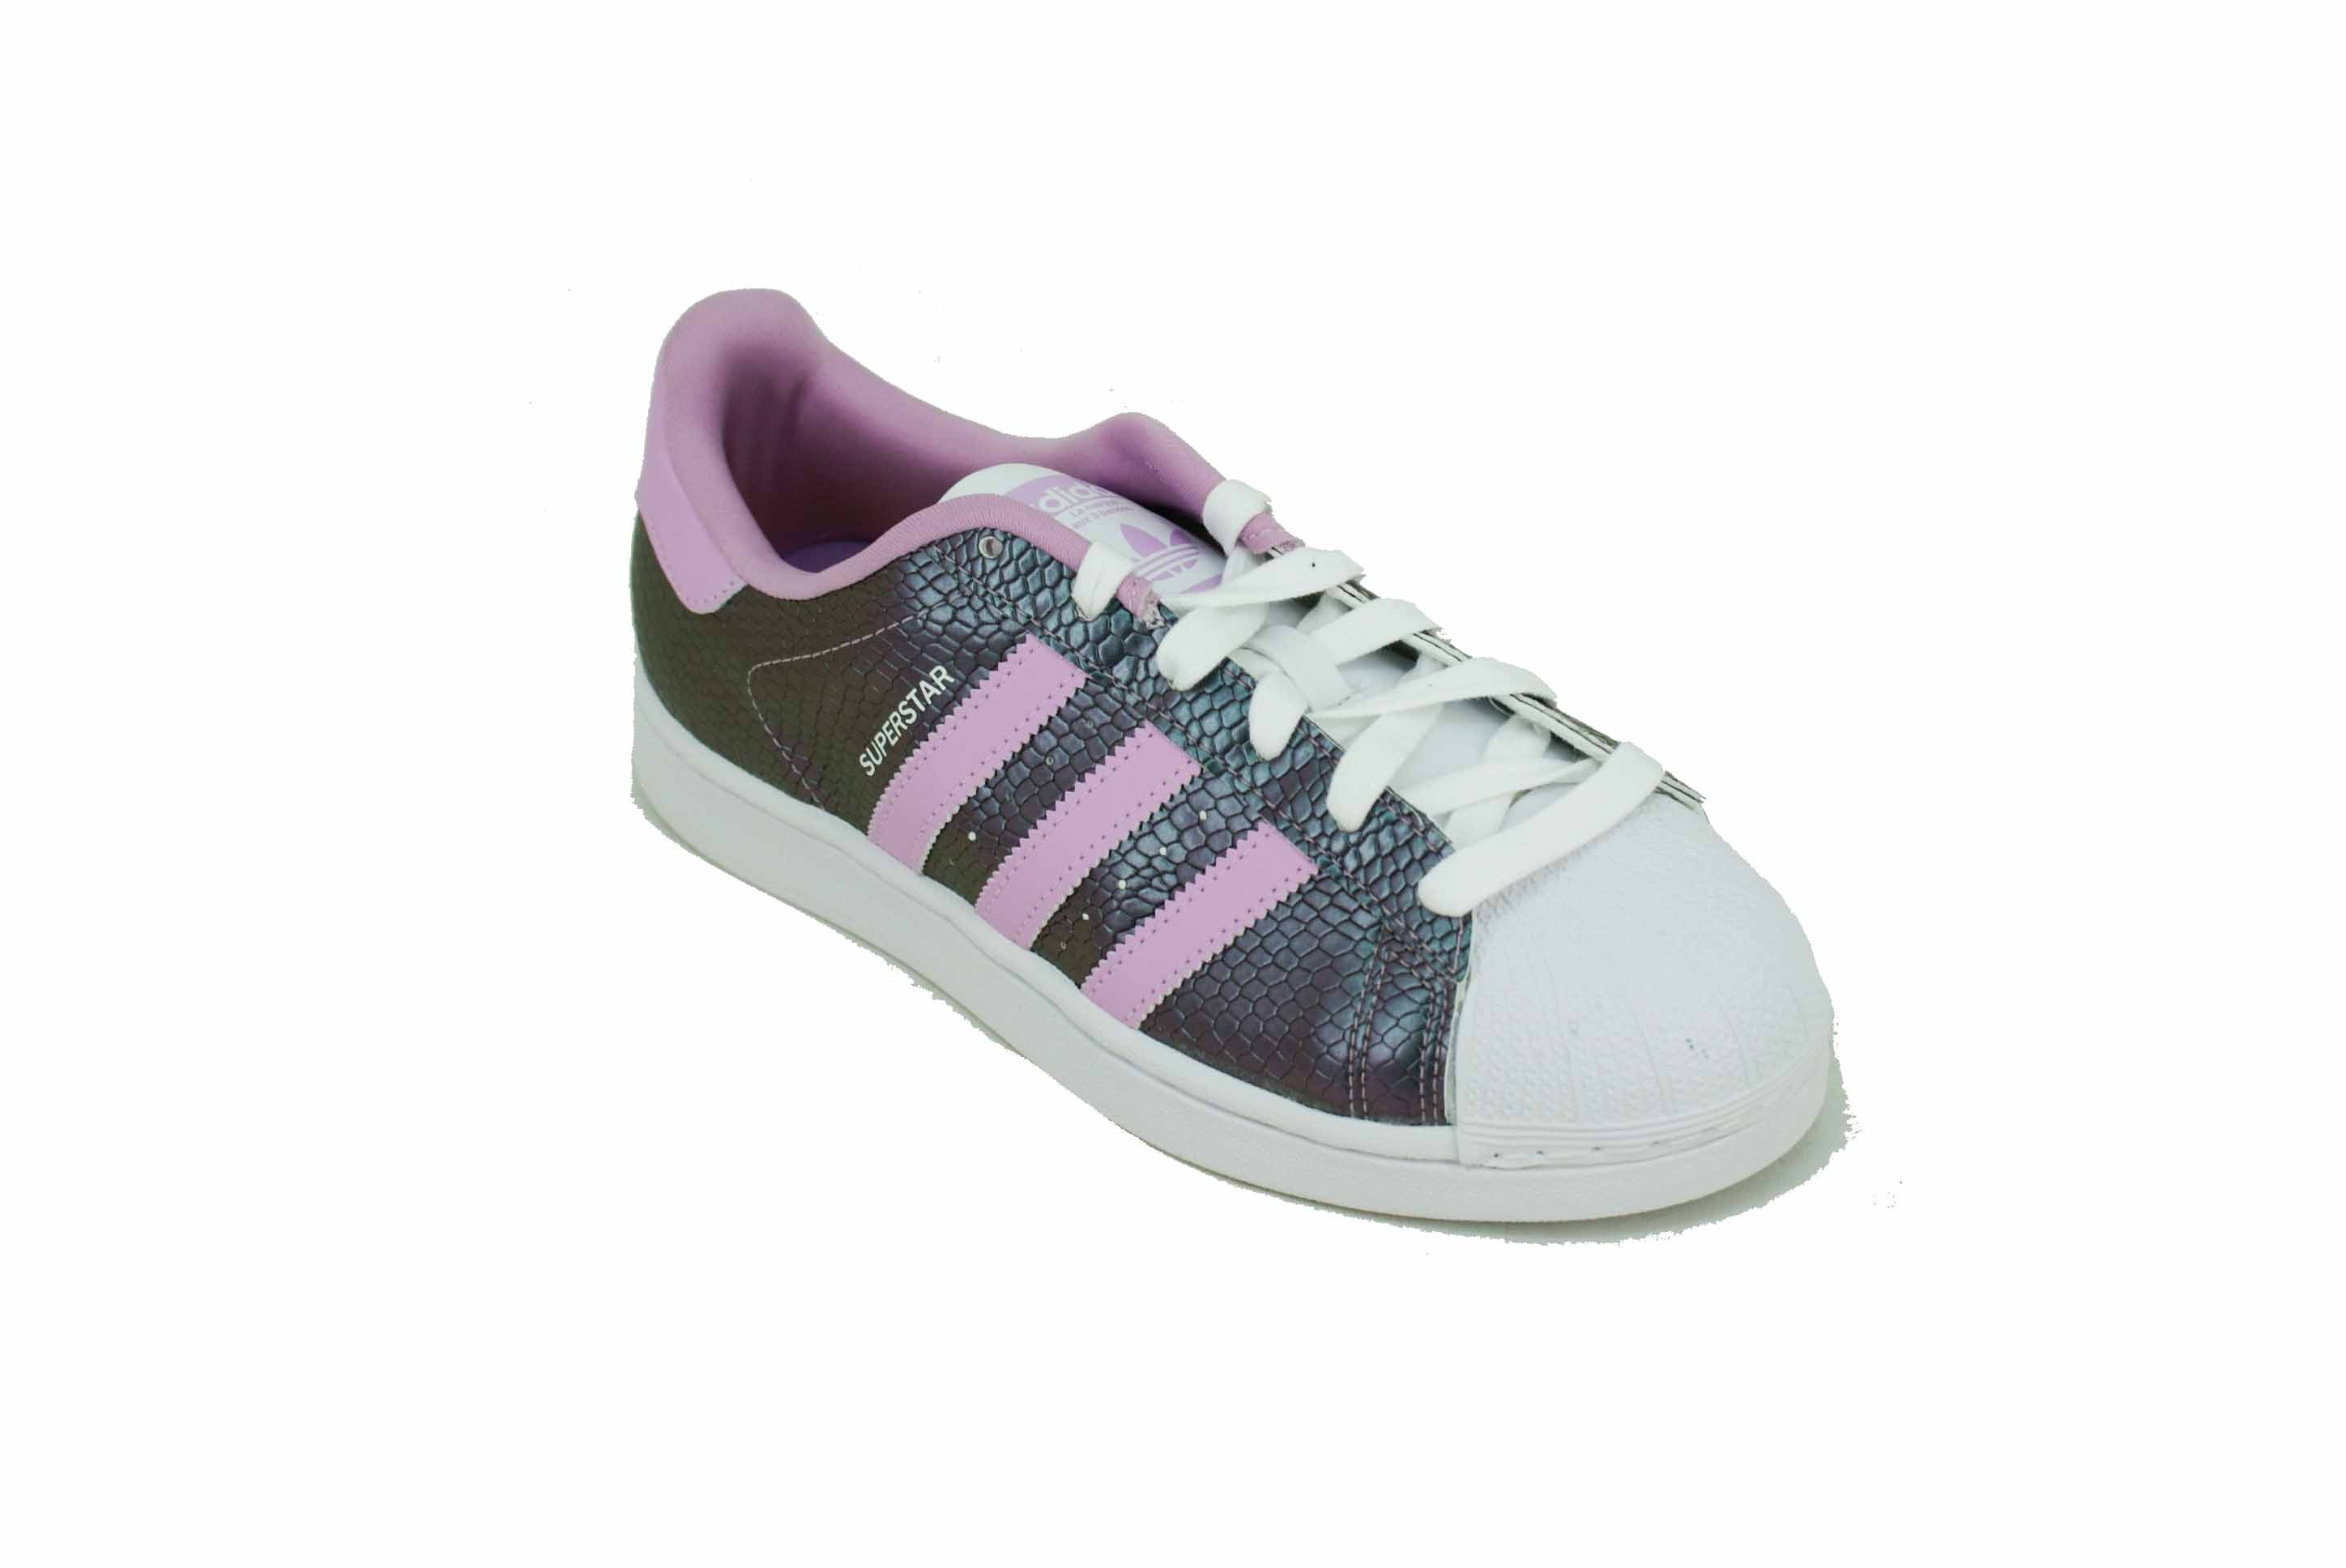 Zapatilla Adidas Originals Superstar Metalizado Lila Niña